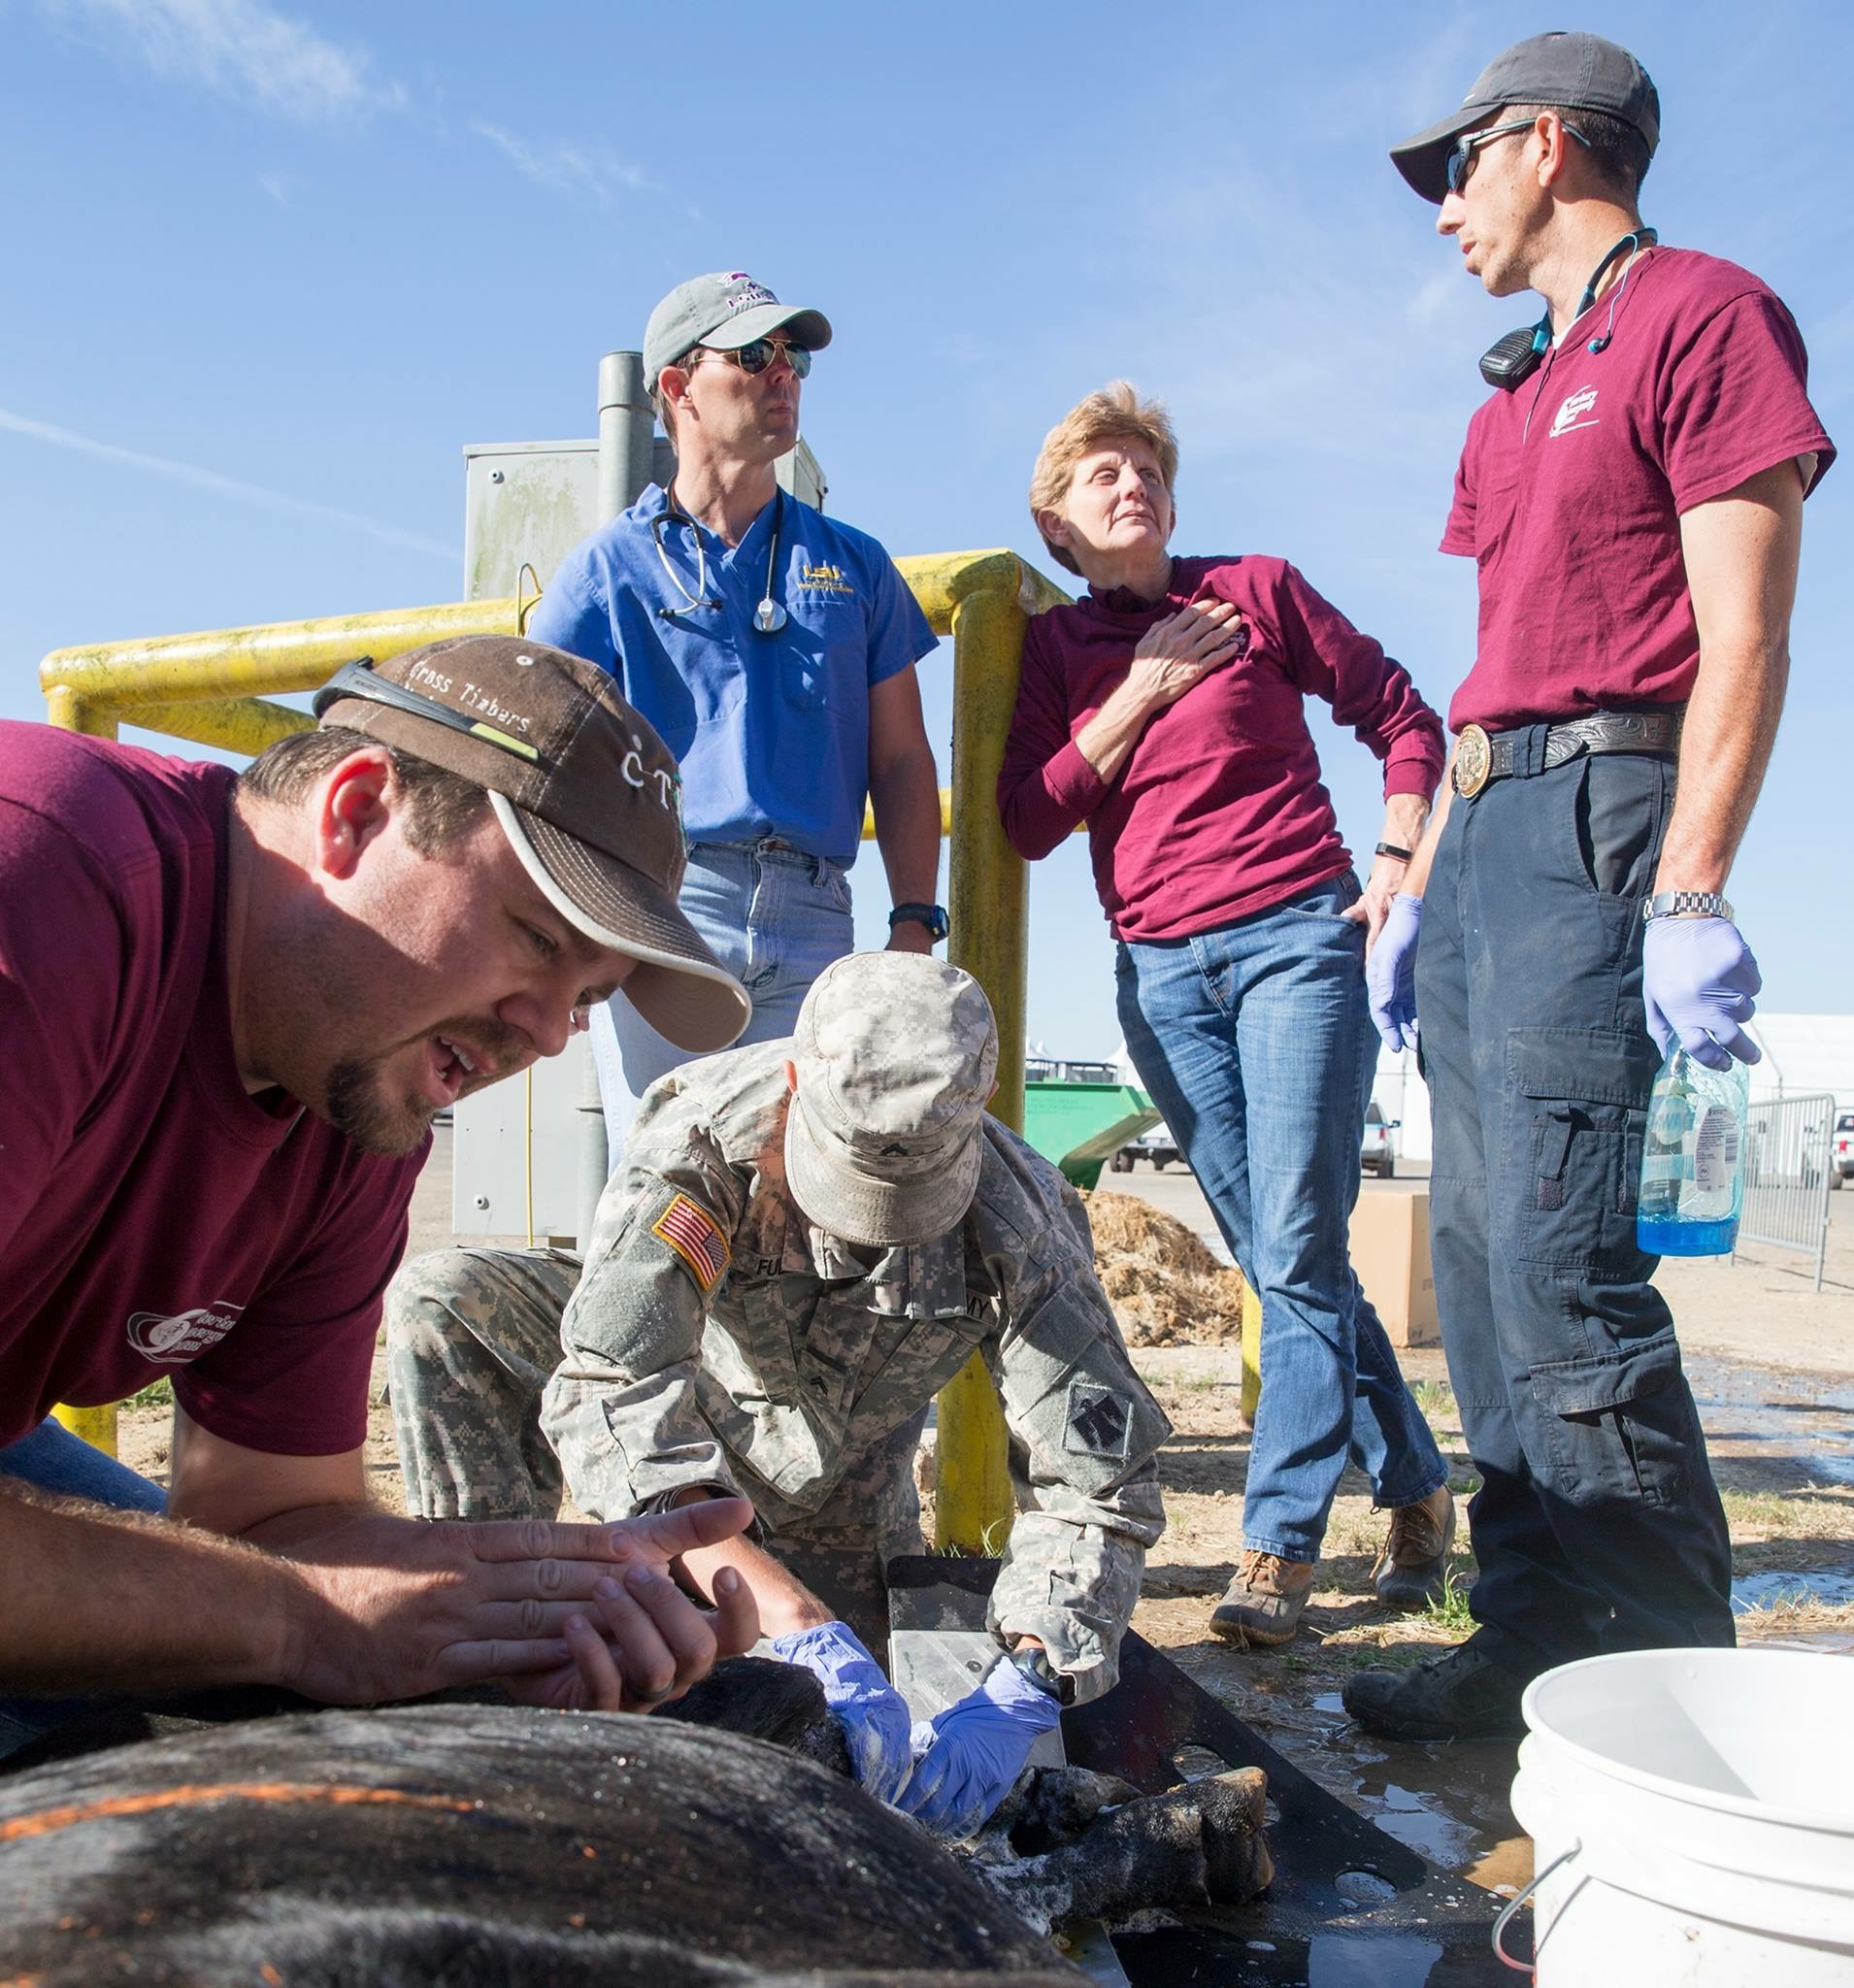 Dr. Stetson Miller assisting the Texas A&M Veterinary Emergency Team in their efforts to offer medical support after Hurricane Harvey.